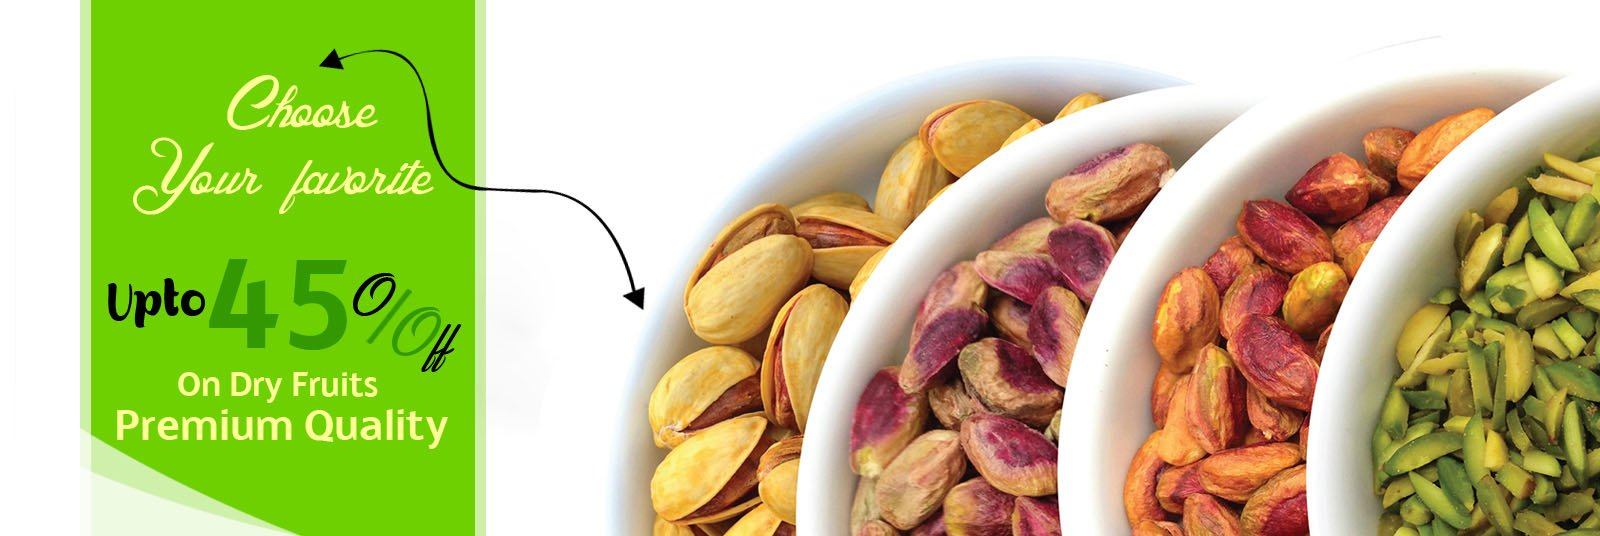 Upto 45 percent off on Dry Fruits